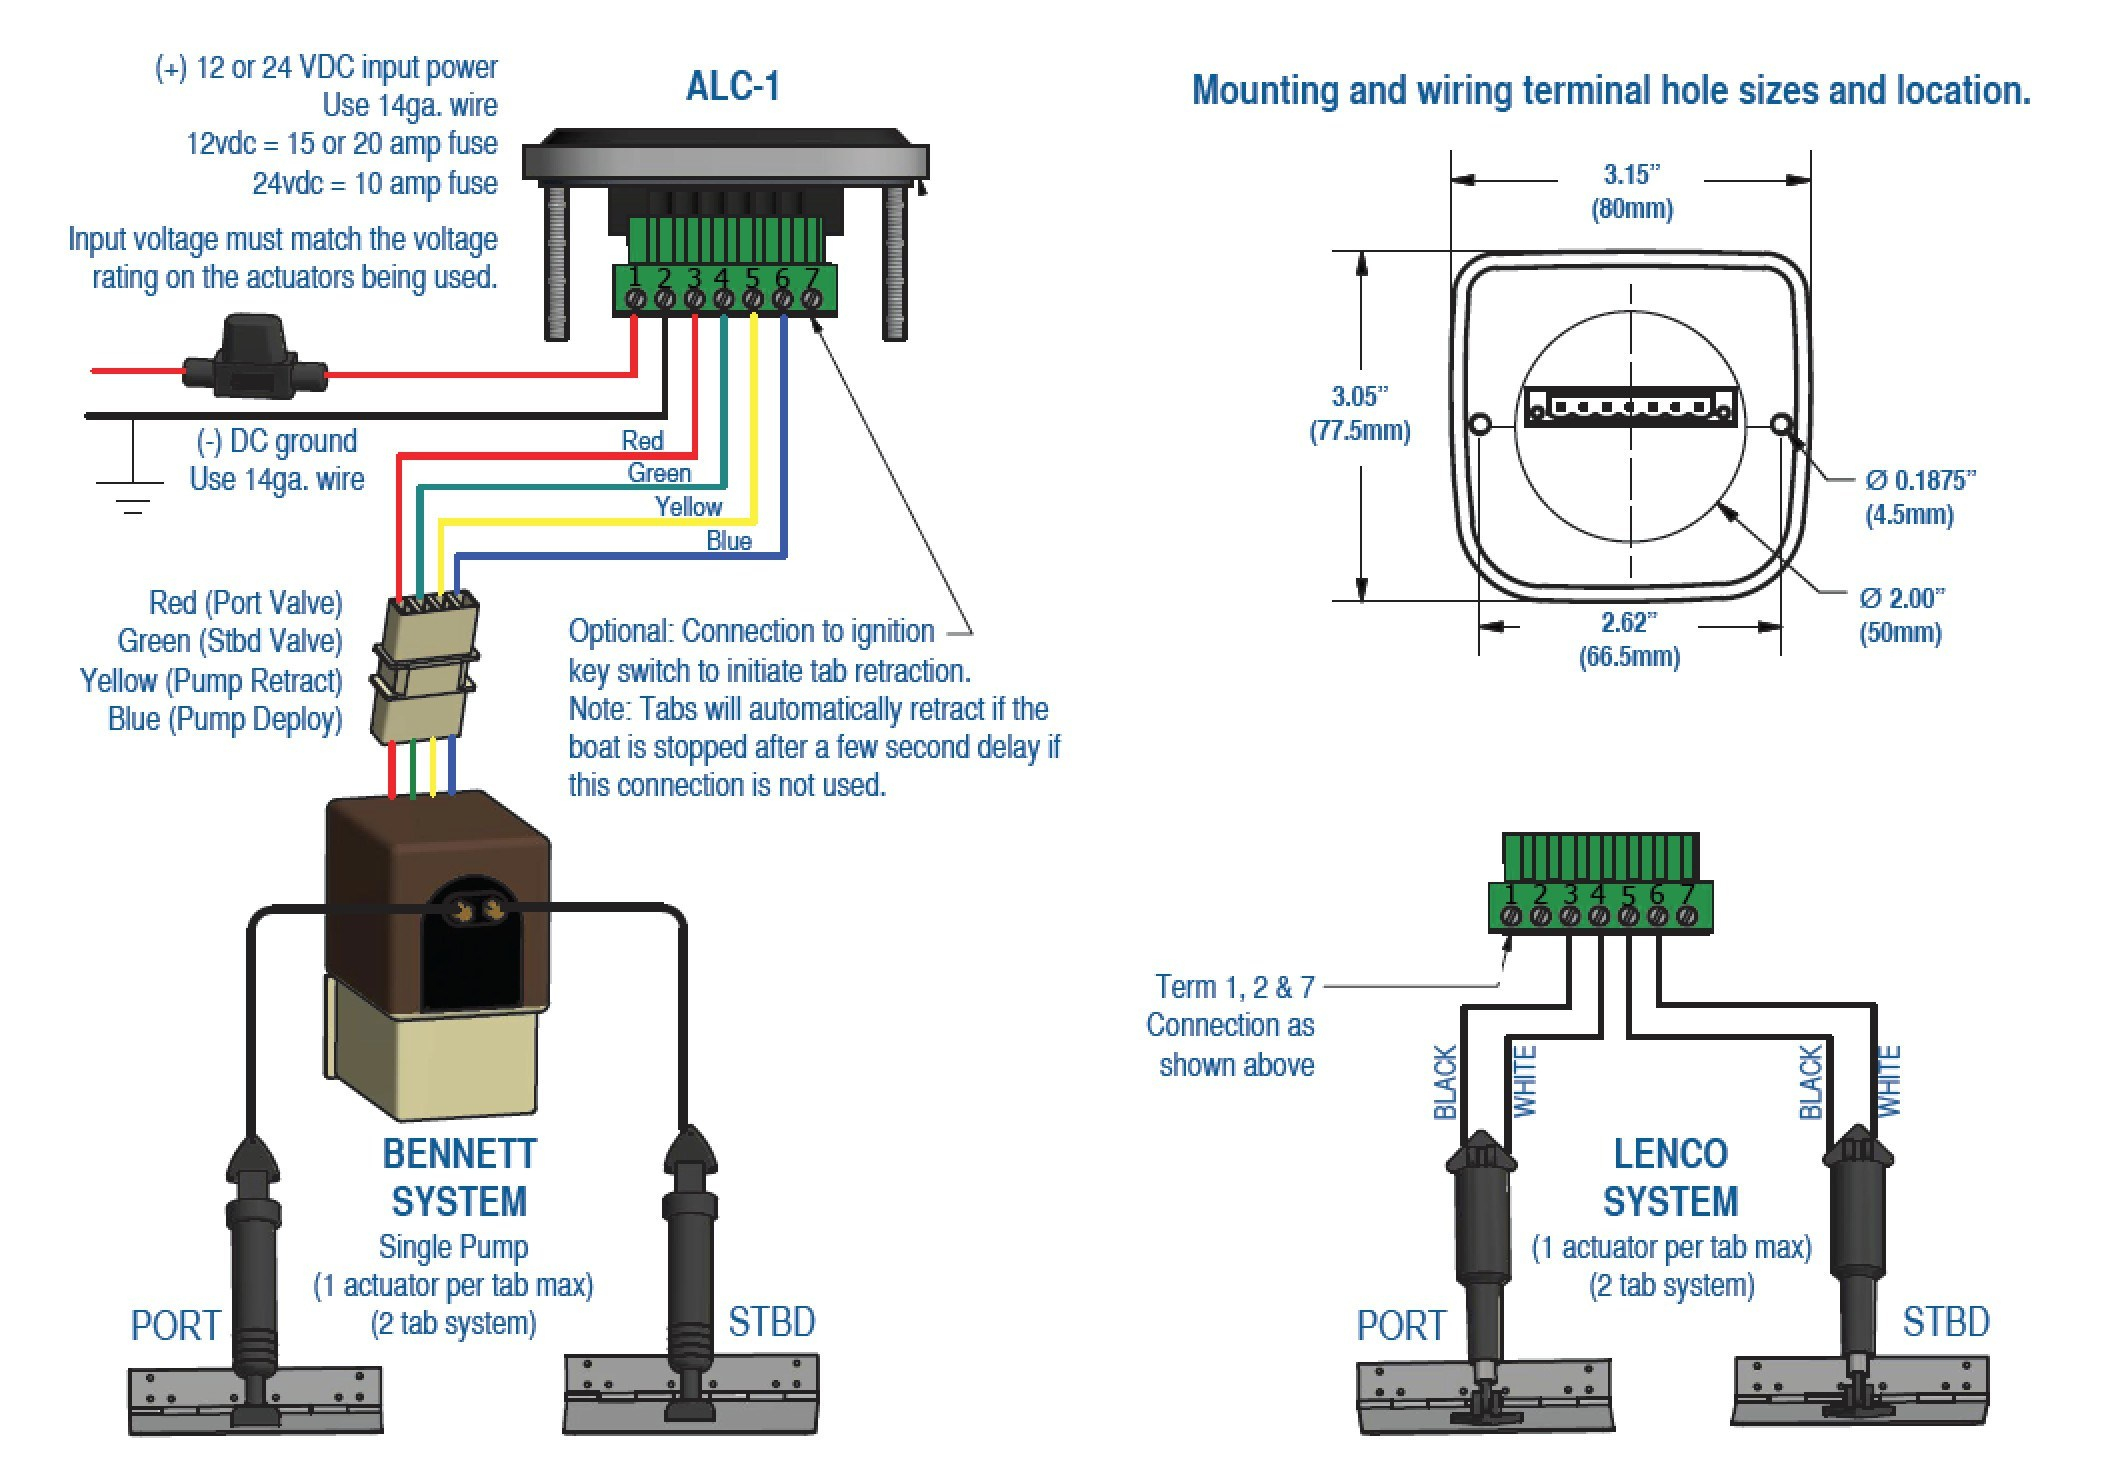 Lenco Trim Tab Wiring Diagram | Wiring Diagram - Bennett Trim Tab Wiring Diagram